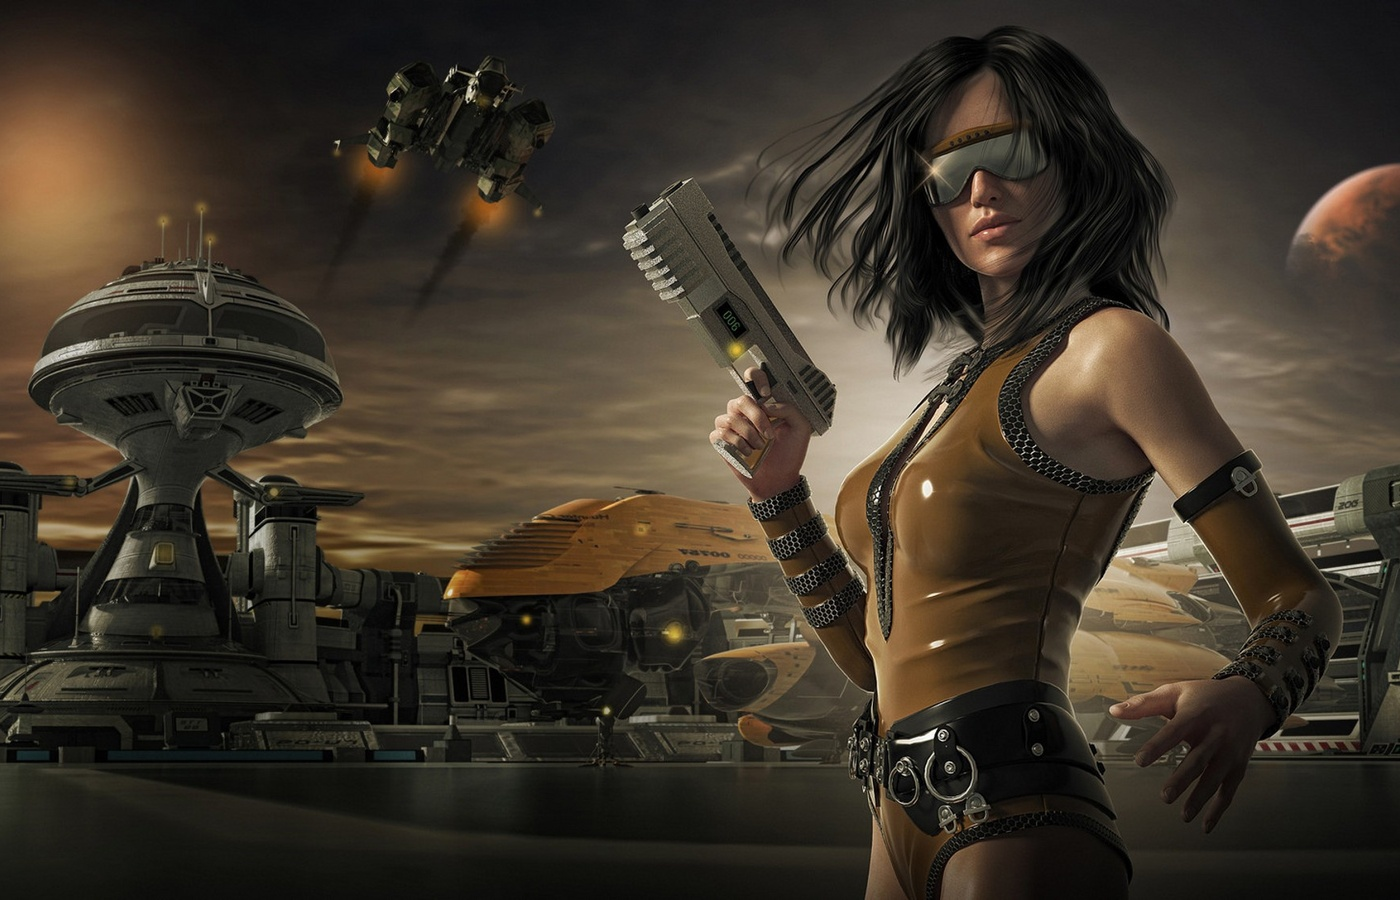 scifi-sunglasses-woman-warrior-with-guns-mu.jpg